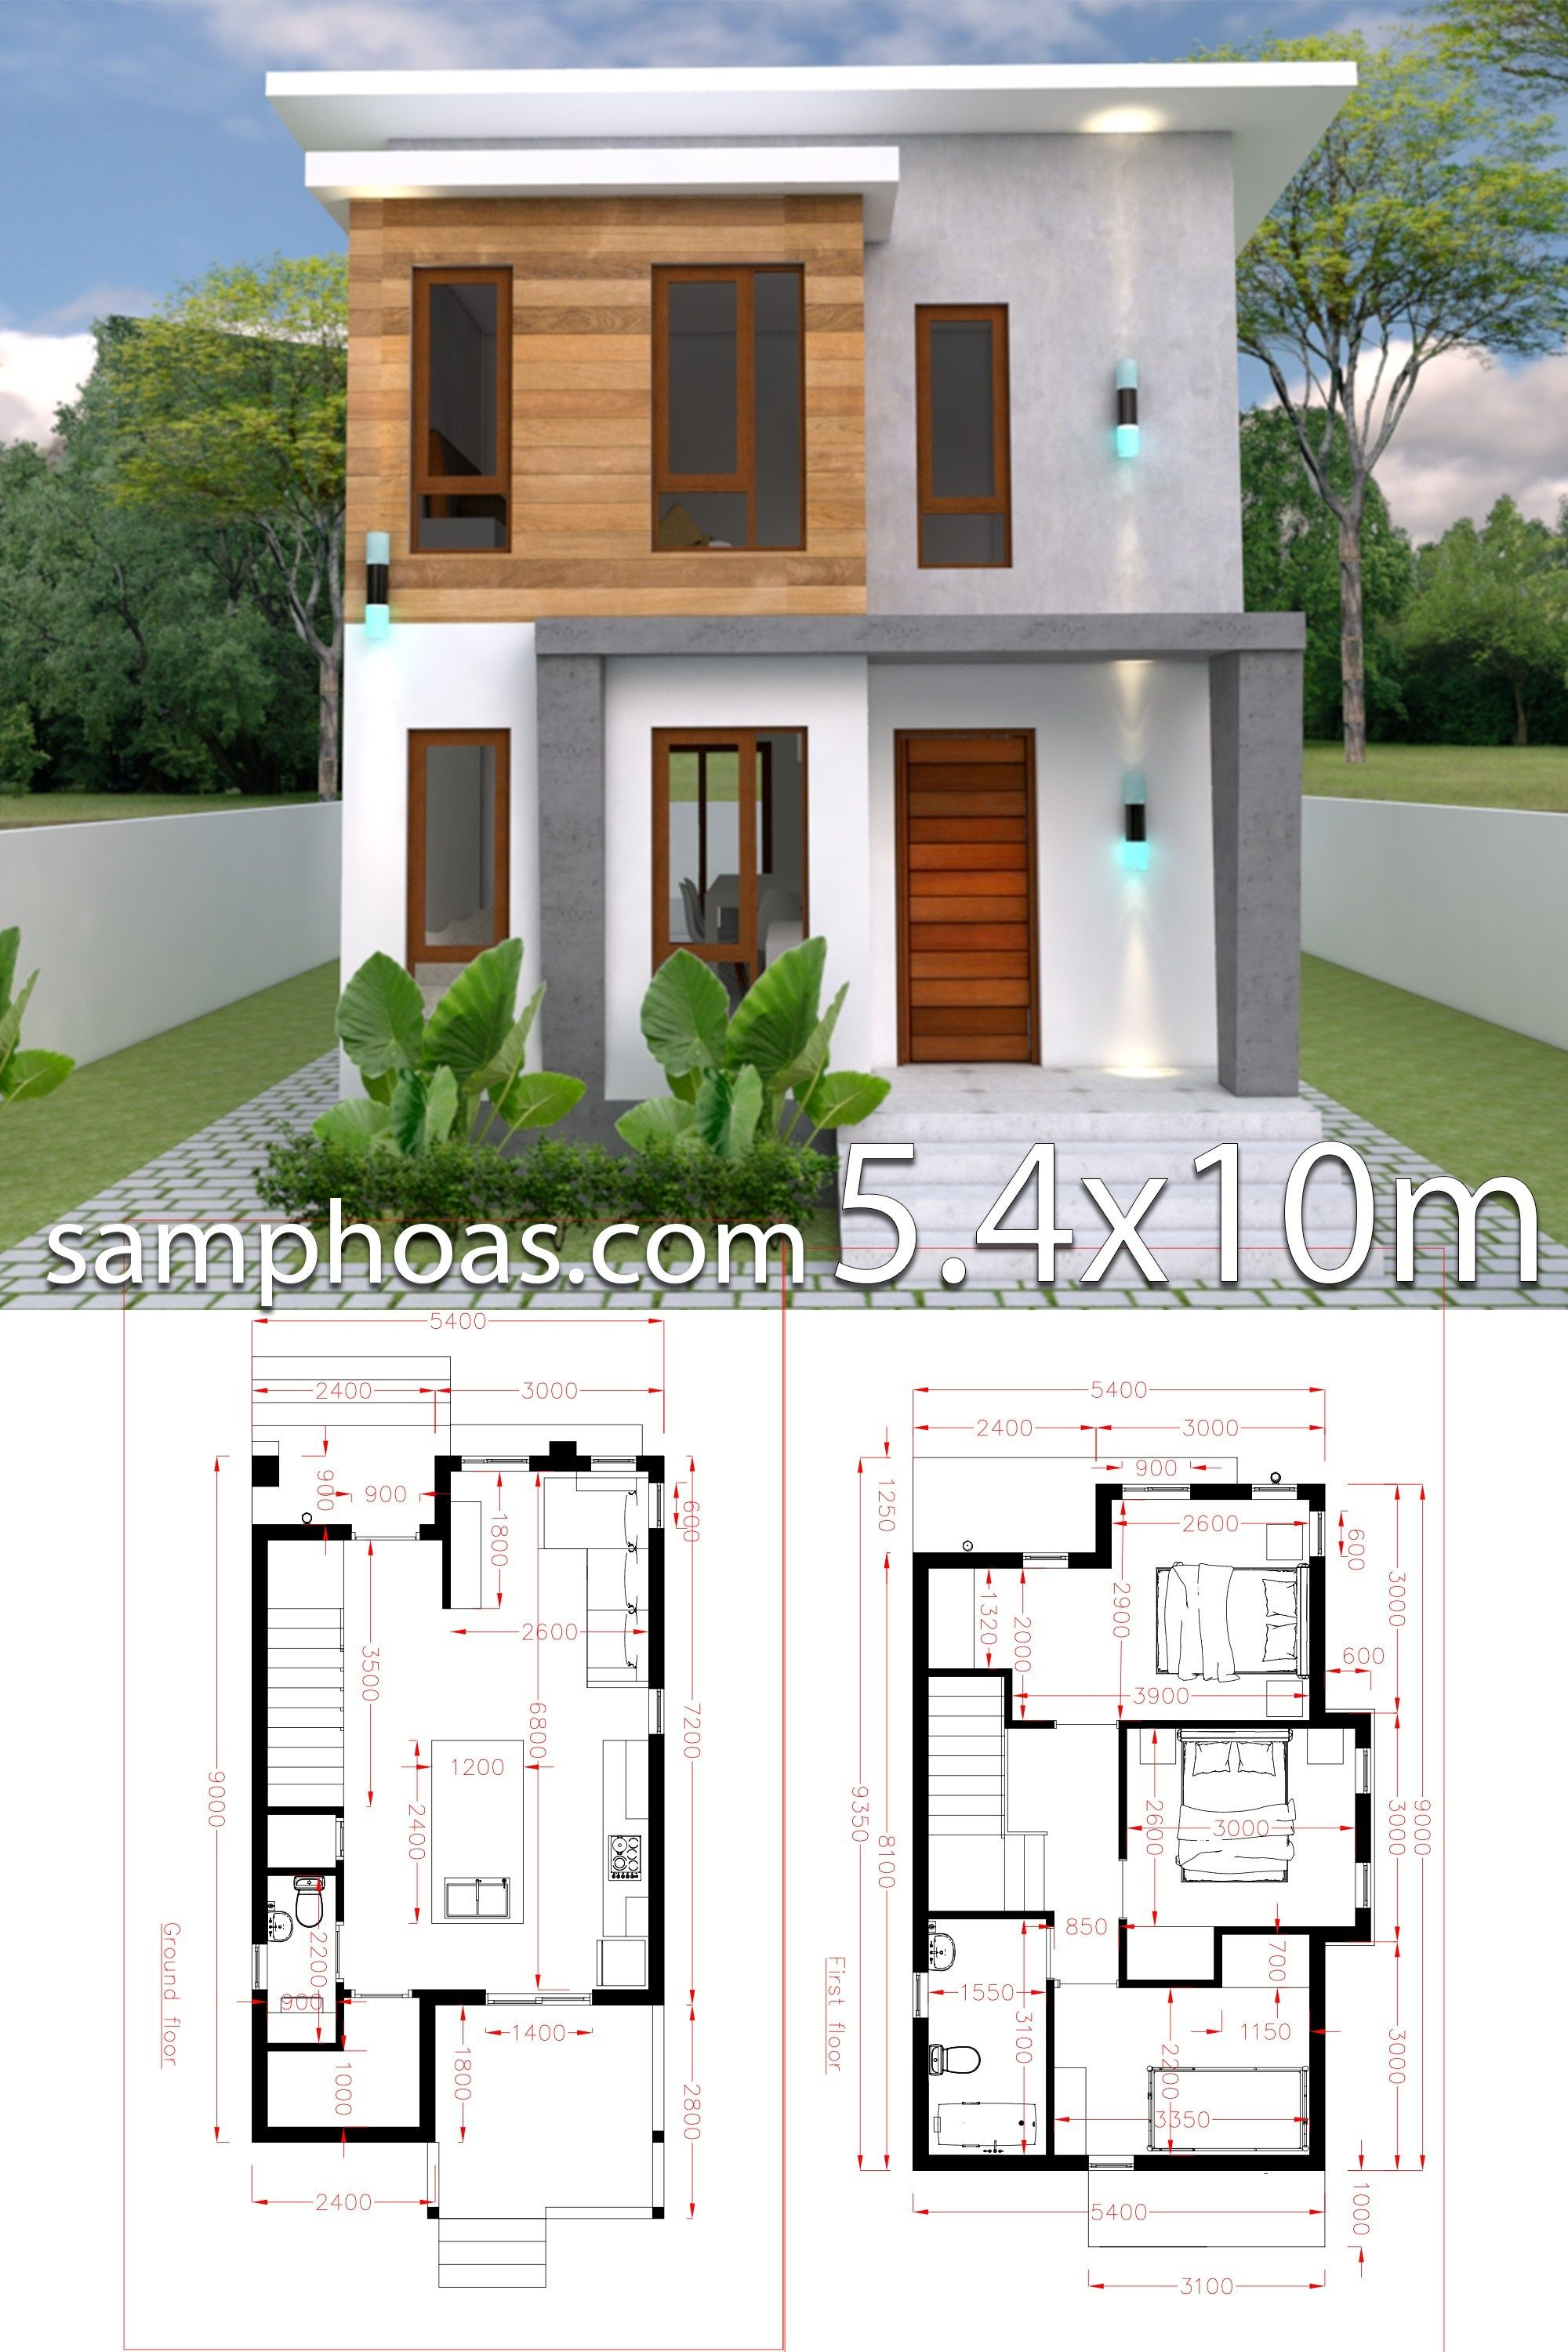 Small Home design Plan 5.4x10m with 3 Bedroom | House | House design ...